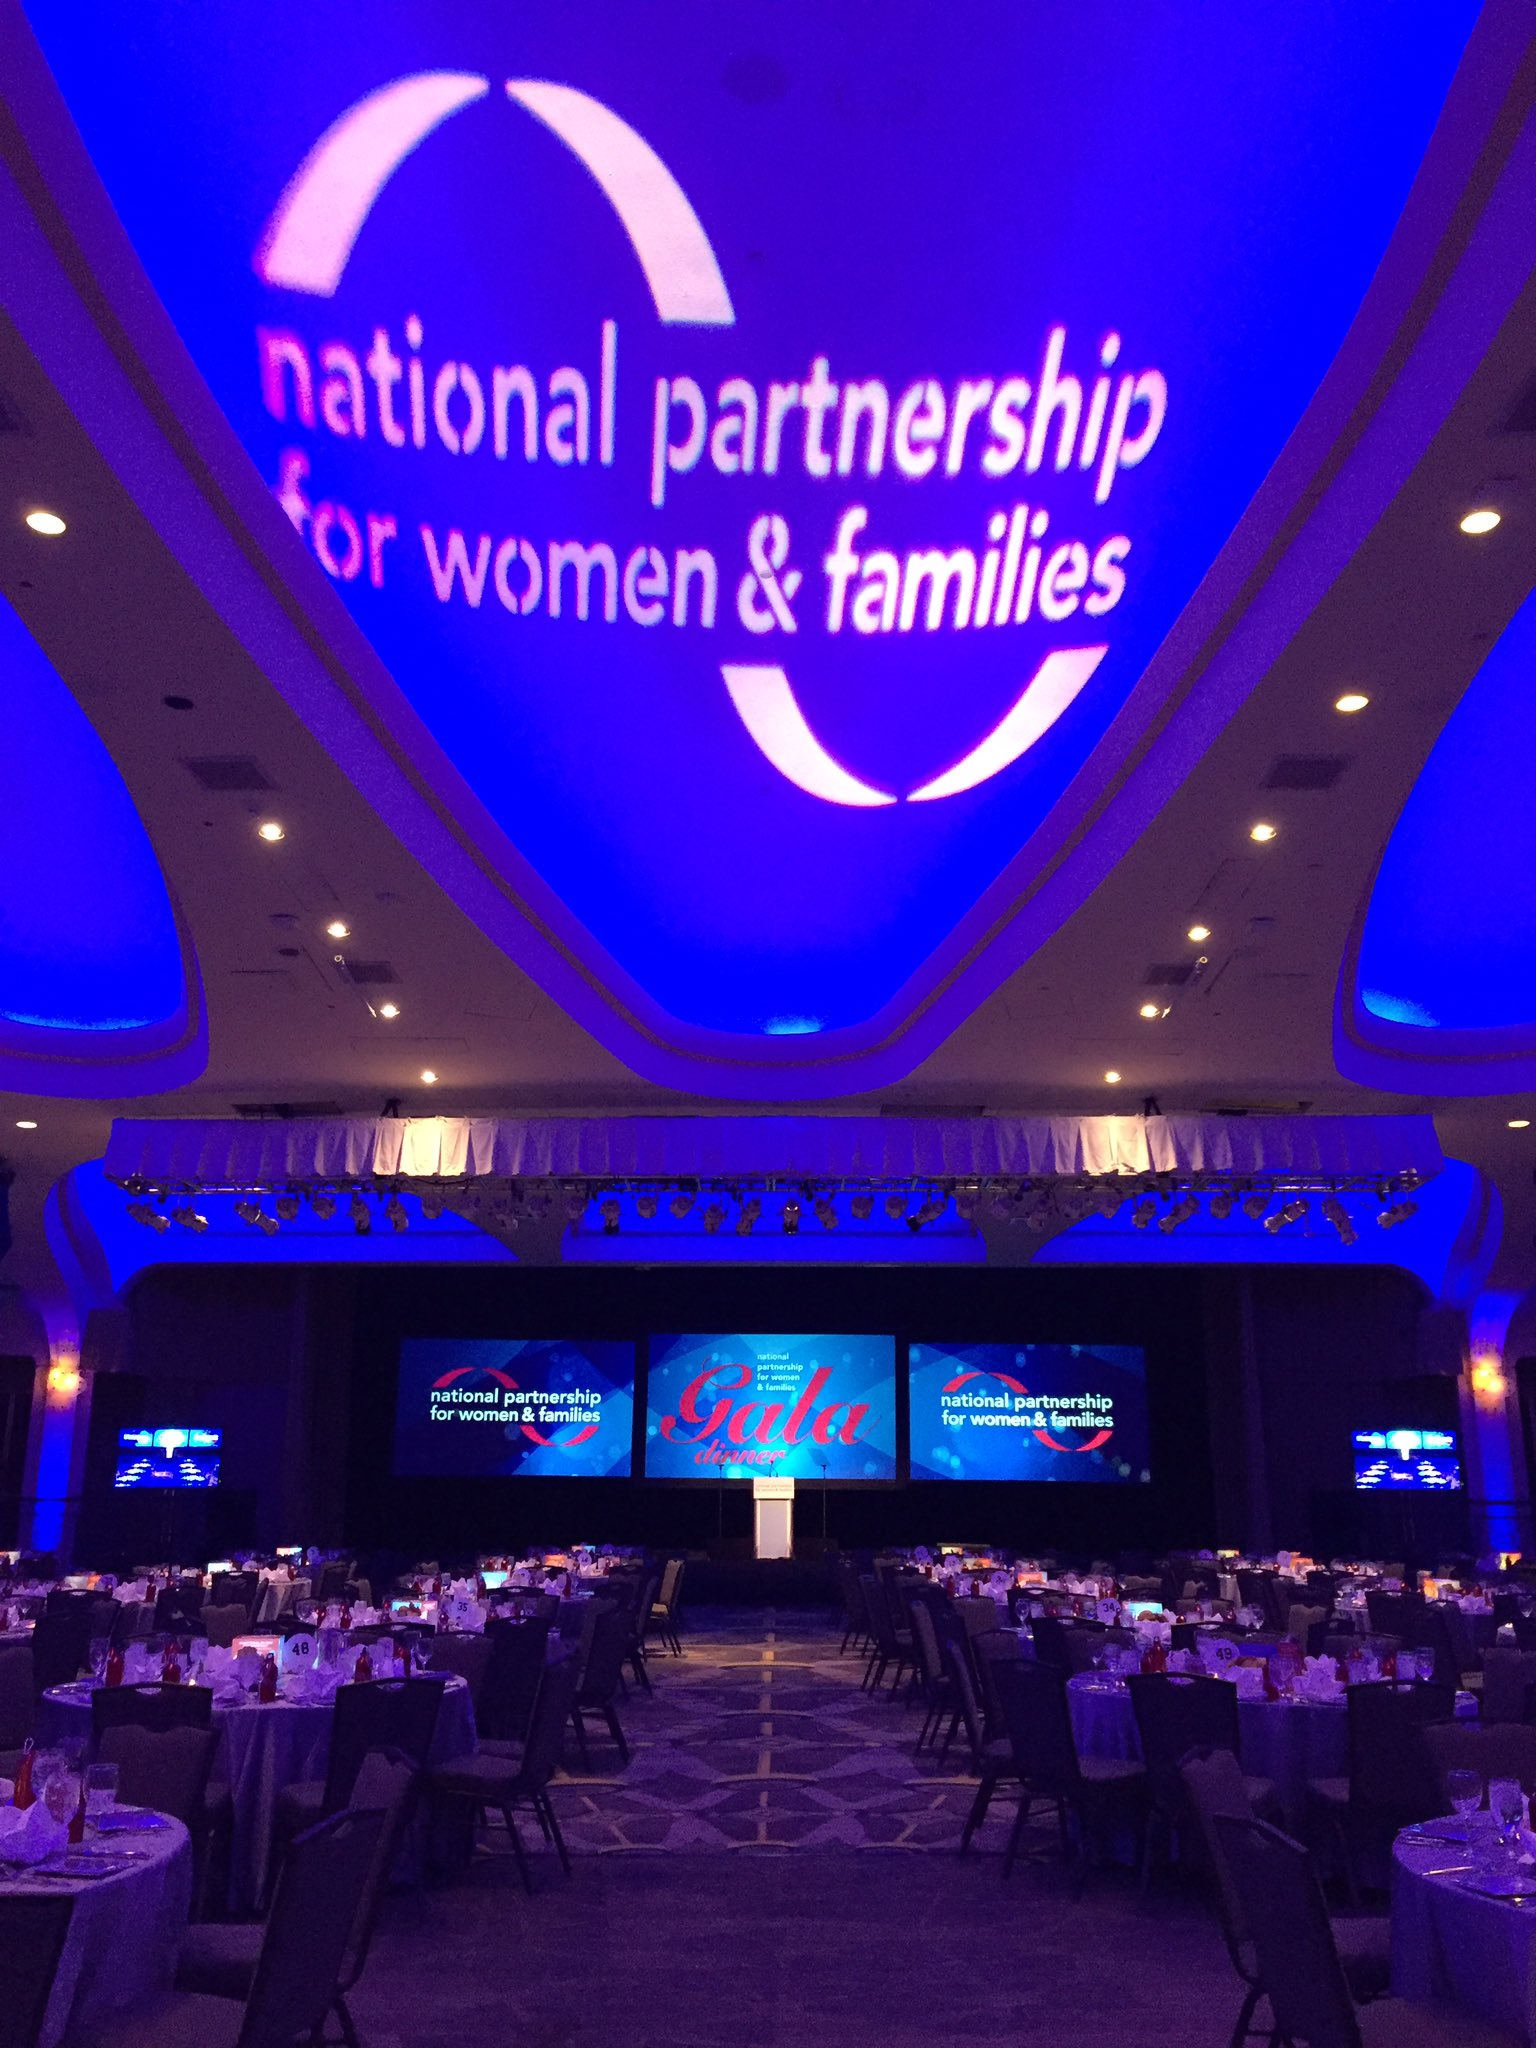 We're excited to kick off our gala in 10 minutes! Share your pics with us! #NPGala https://t.co/O7TXBKQkrO